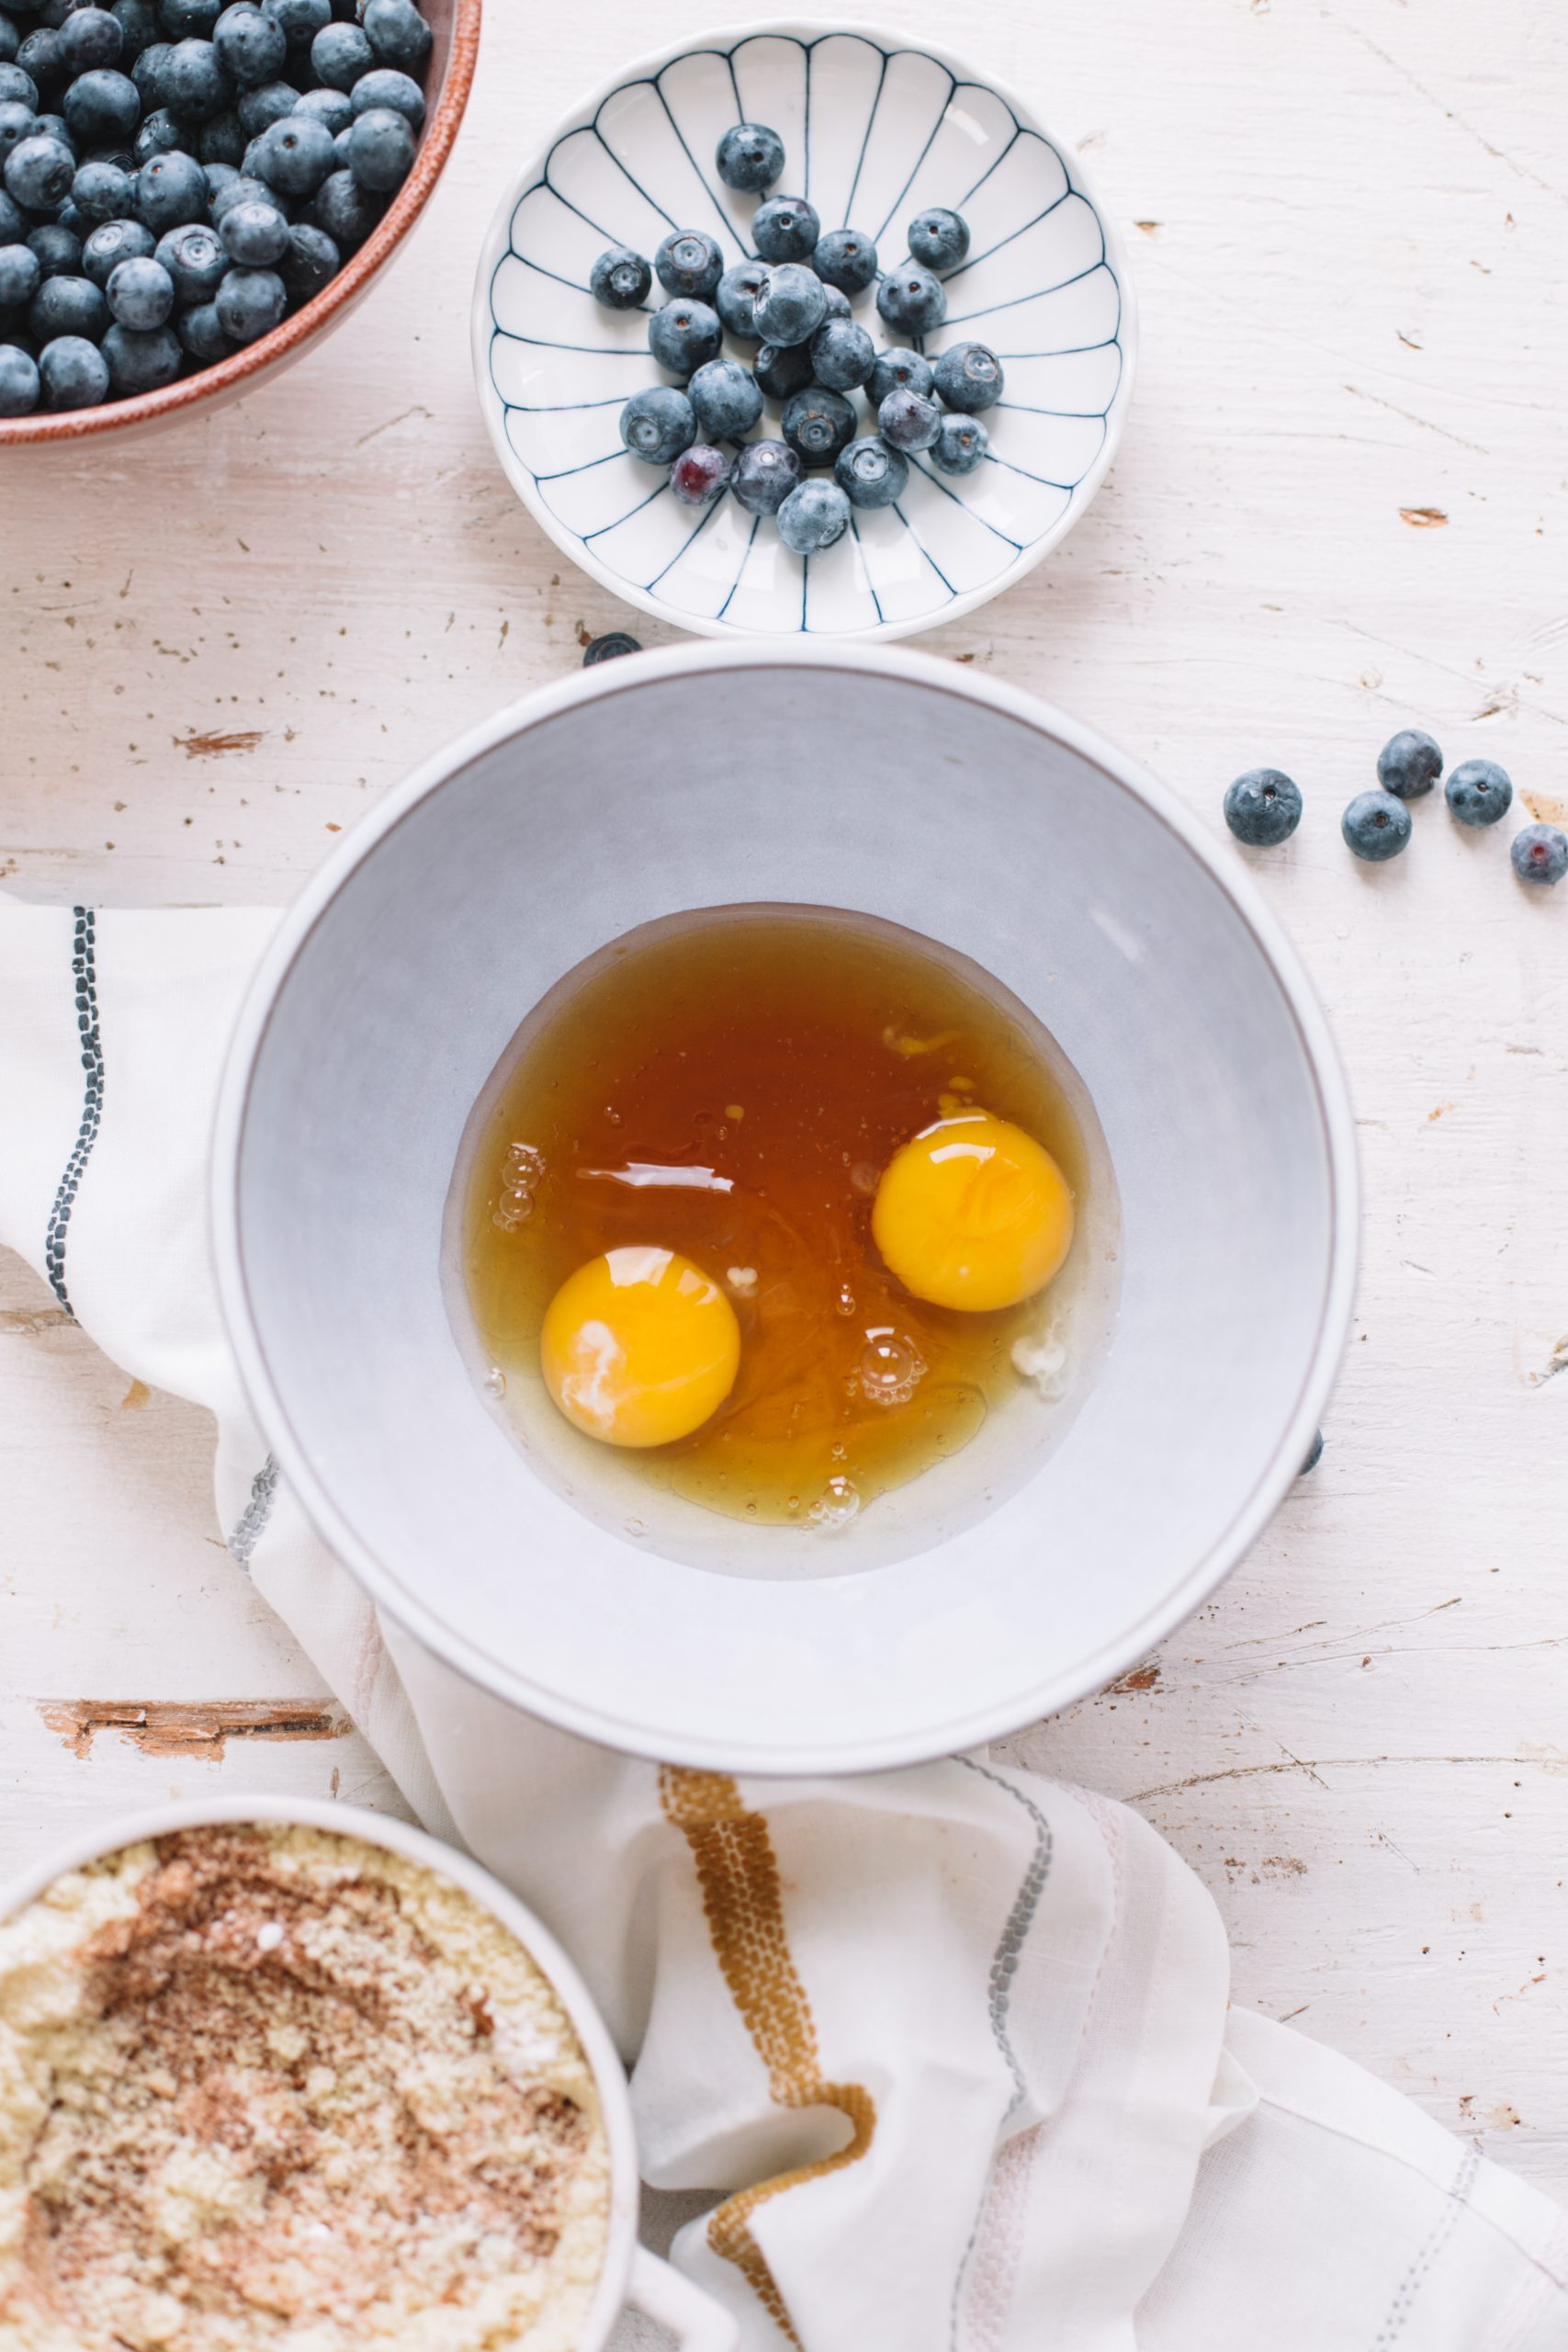 Eggs and honey in a mixing bowl.